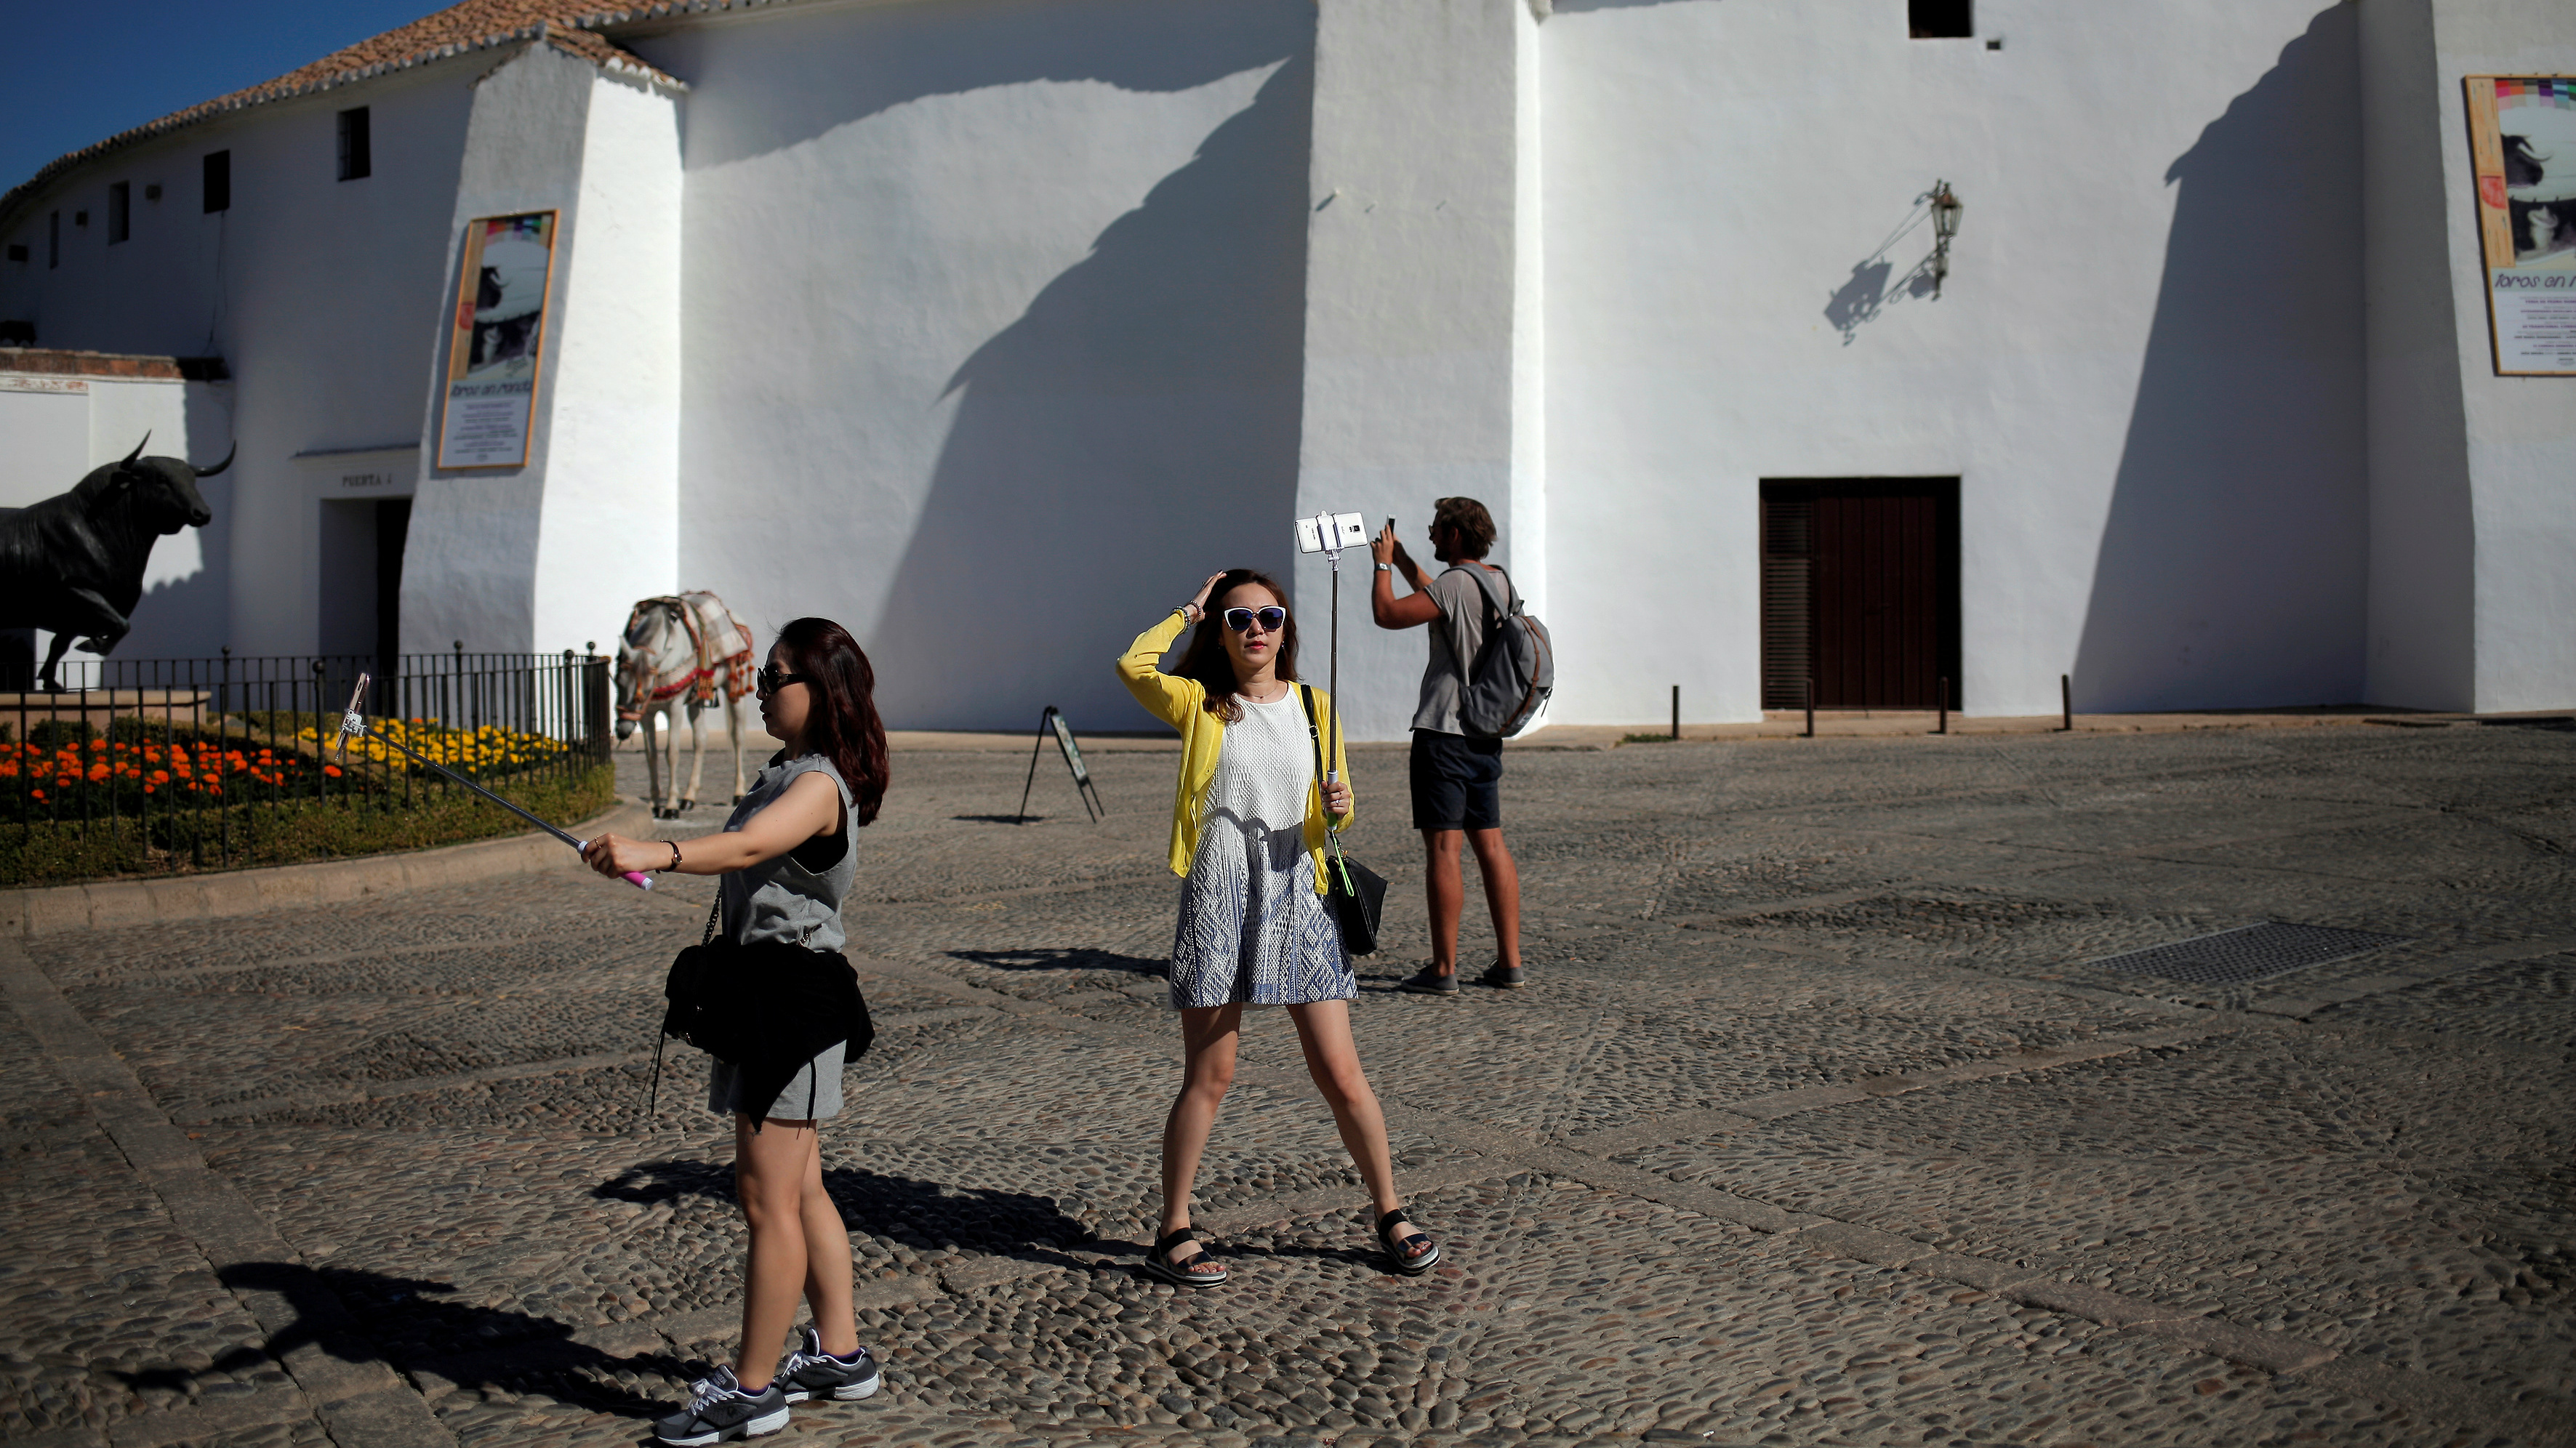 Tourists use selfie sticks to take photographs next to the statue of a bull.